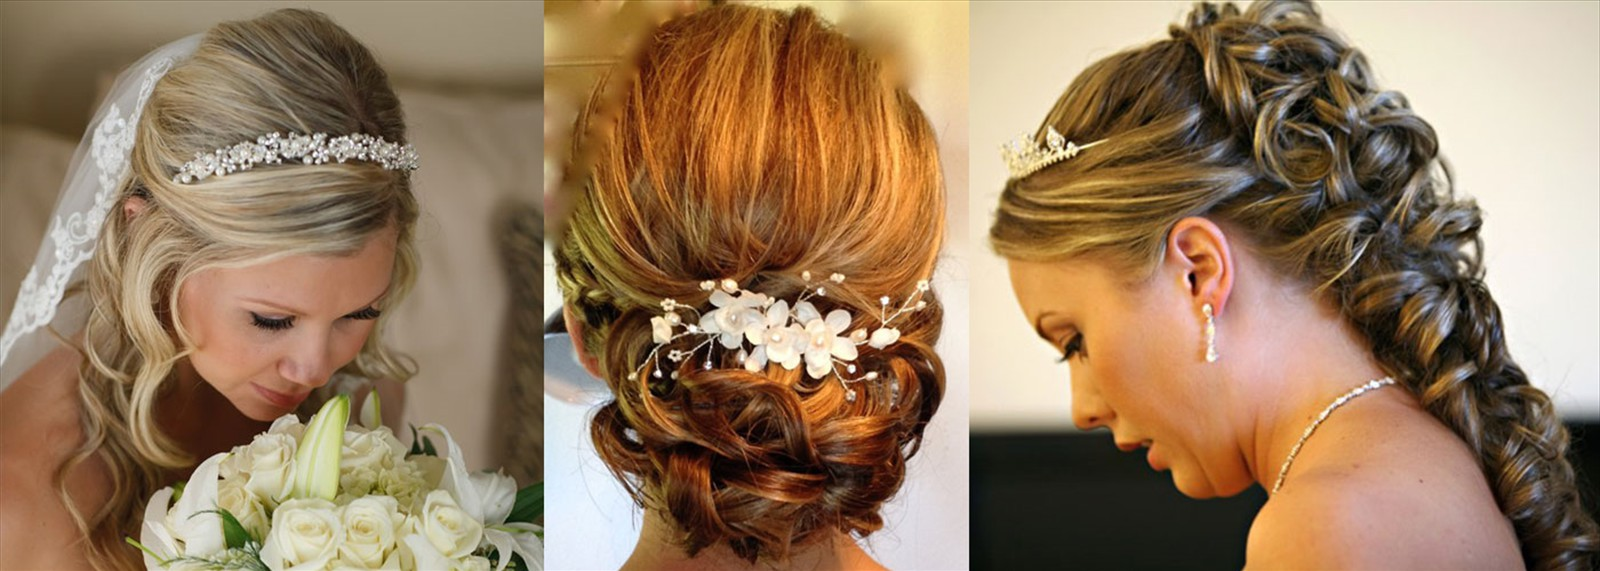 Brides Hair Styling